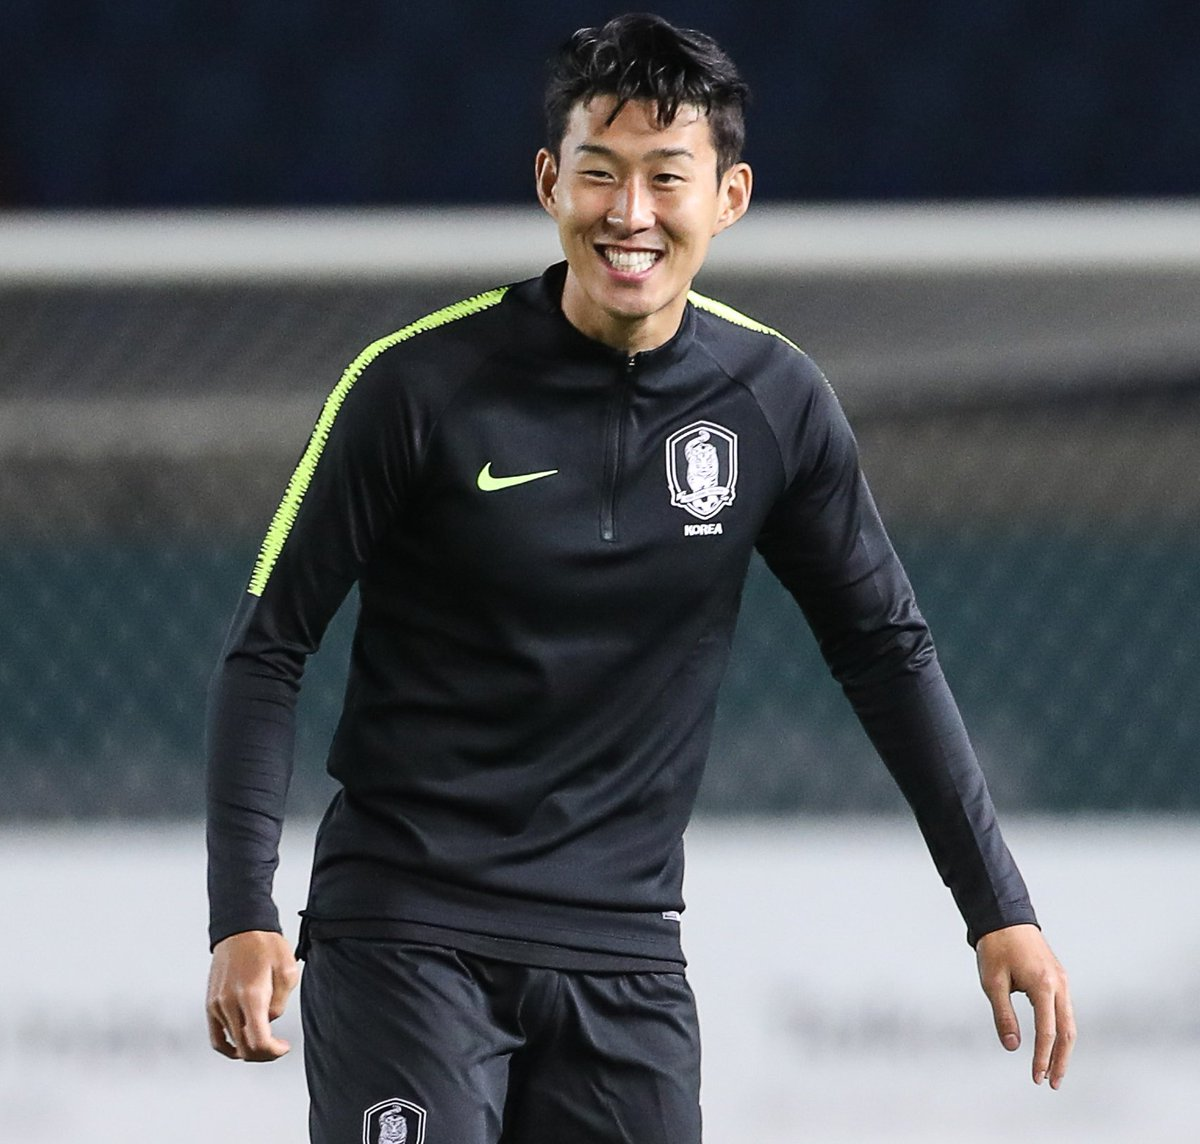 🇰🇷 Best of luck to Sonny who captains South Korea in their final group match of the Asian Games today. 👏 #COYS